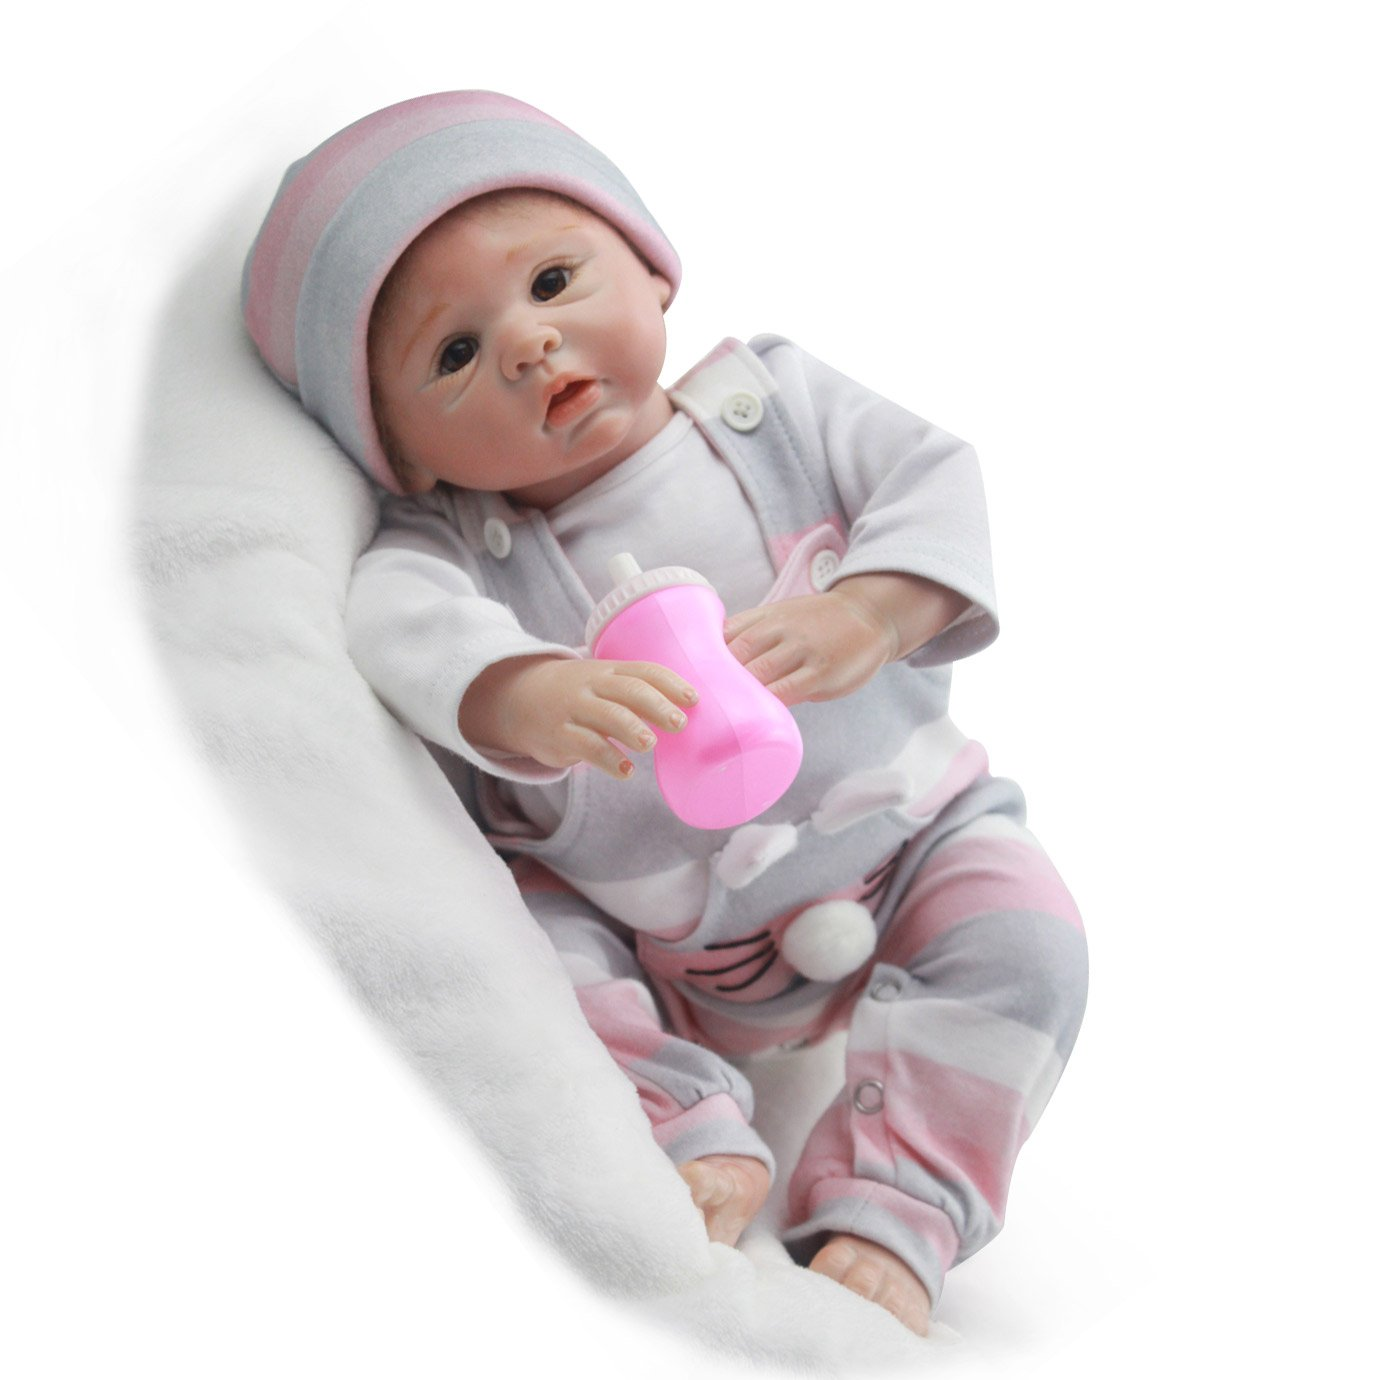 Pursue Baby Soft Vinyl Cloth Body Reborn Baby Doll, Big Nose Little Rabbit, 18 Inch Lifelike Poseable Newborn Baby Doll Weighted for Realism